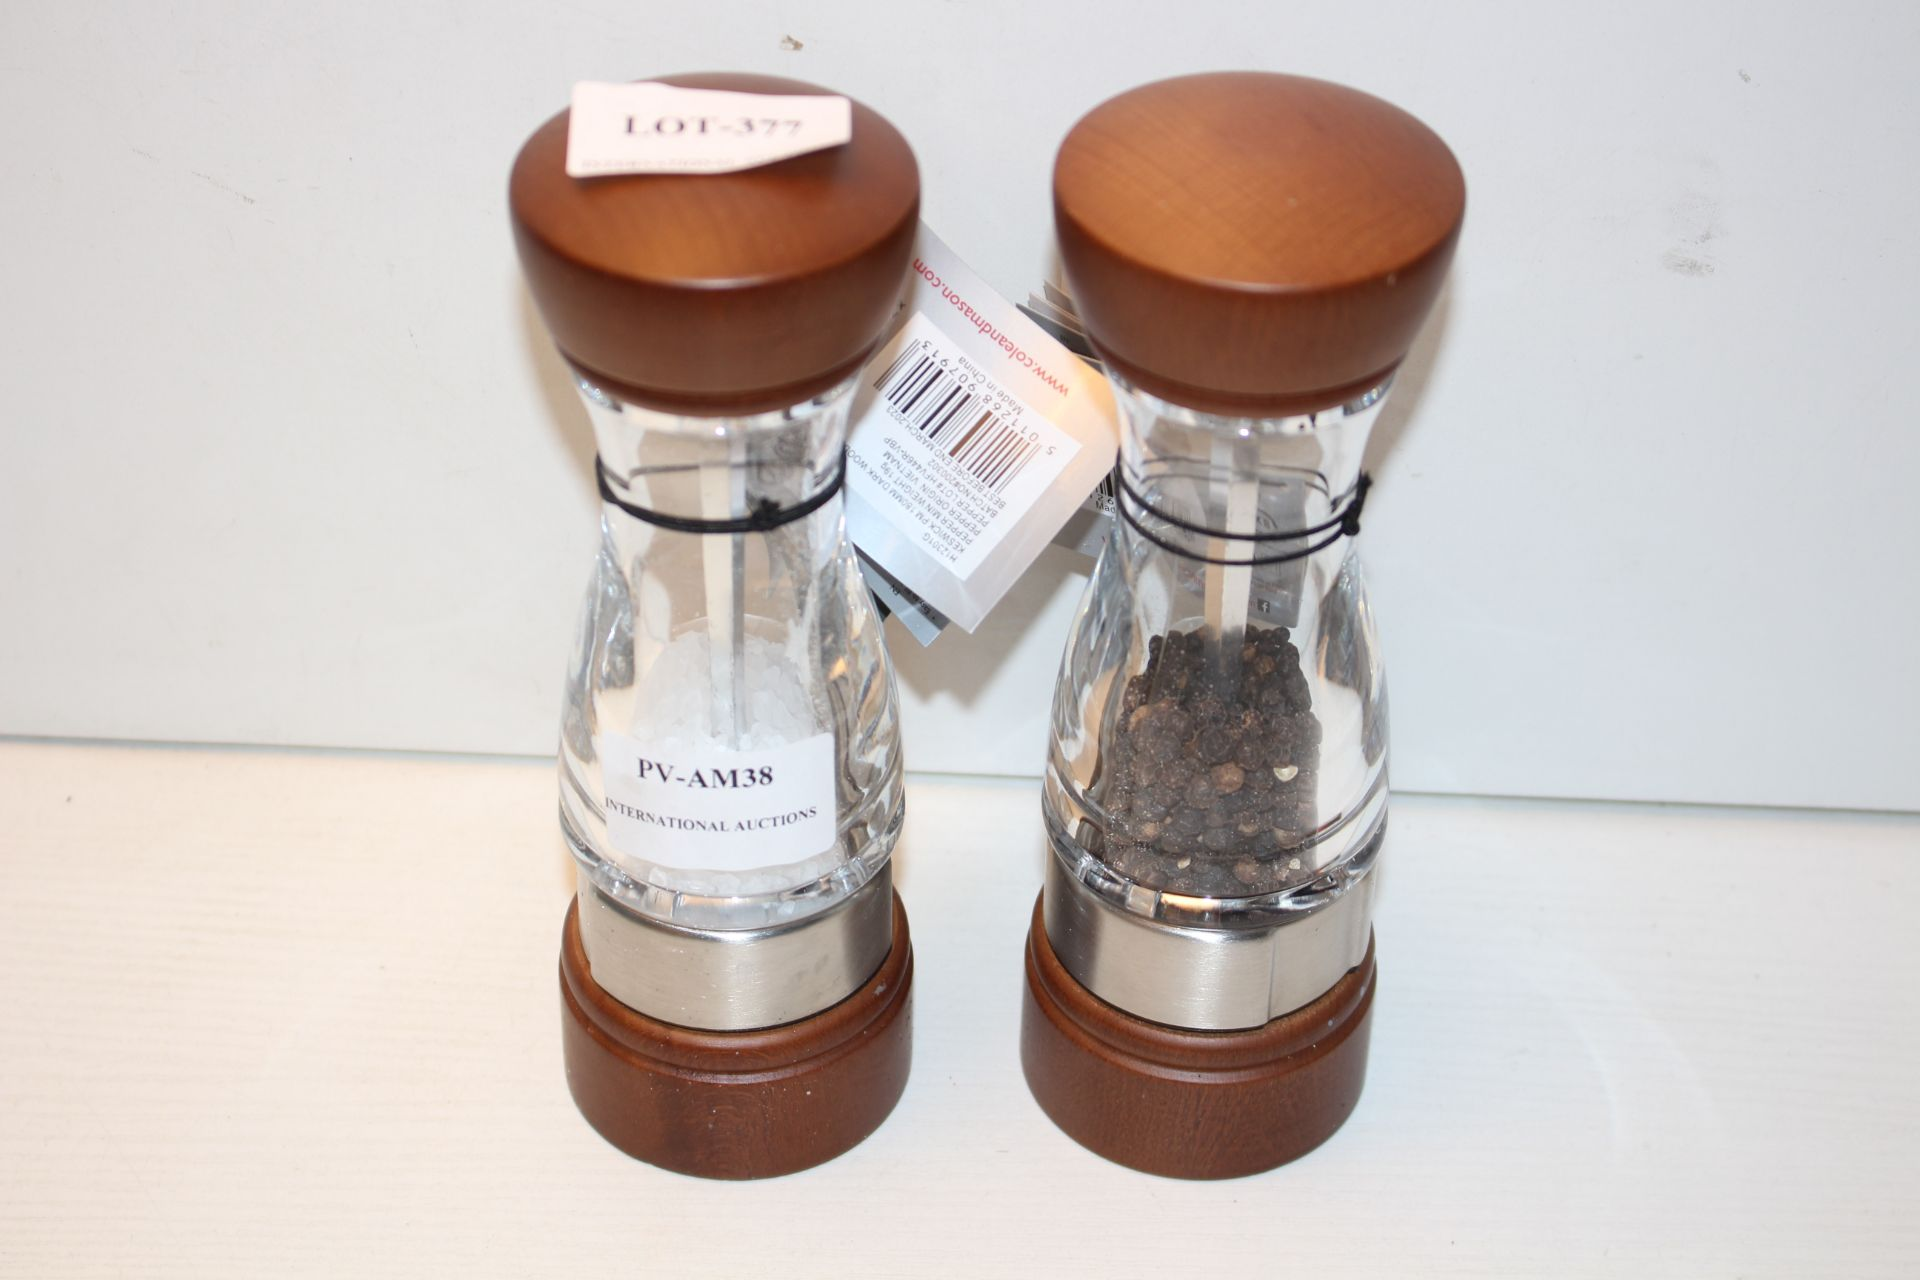 UNBOXED COLE & MASON SALT & PEPPER MILL SET Condition ReportAppraisal Available on Request- All